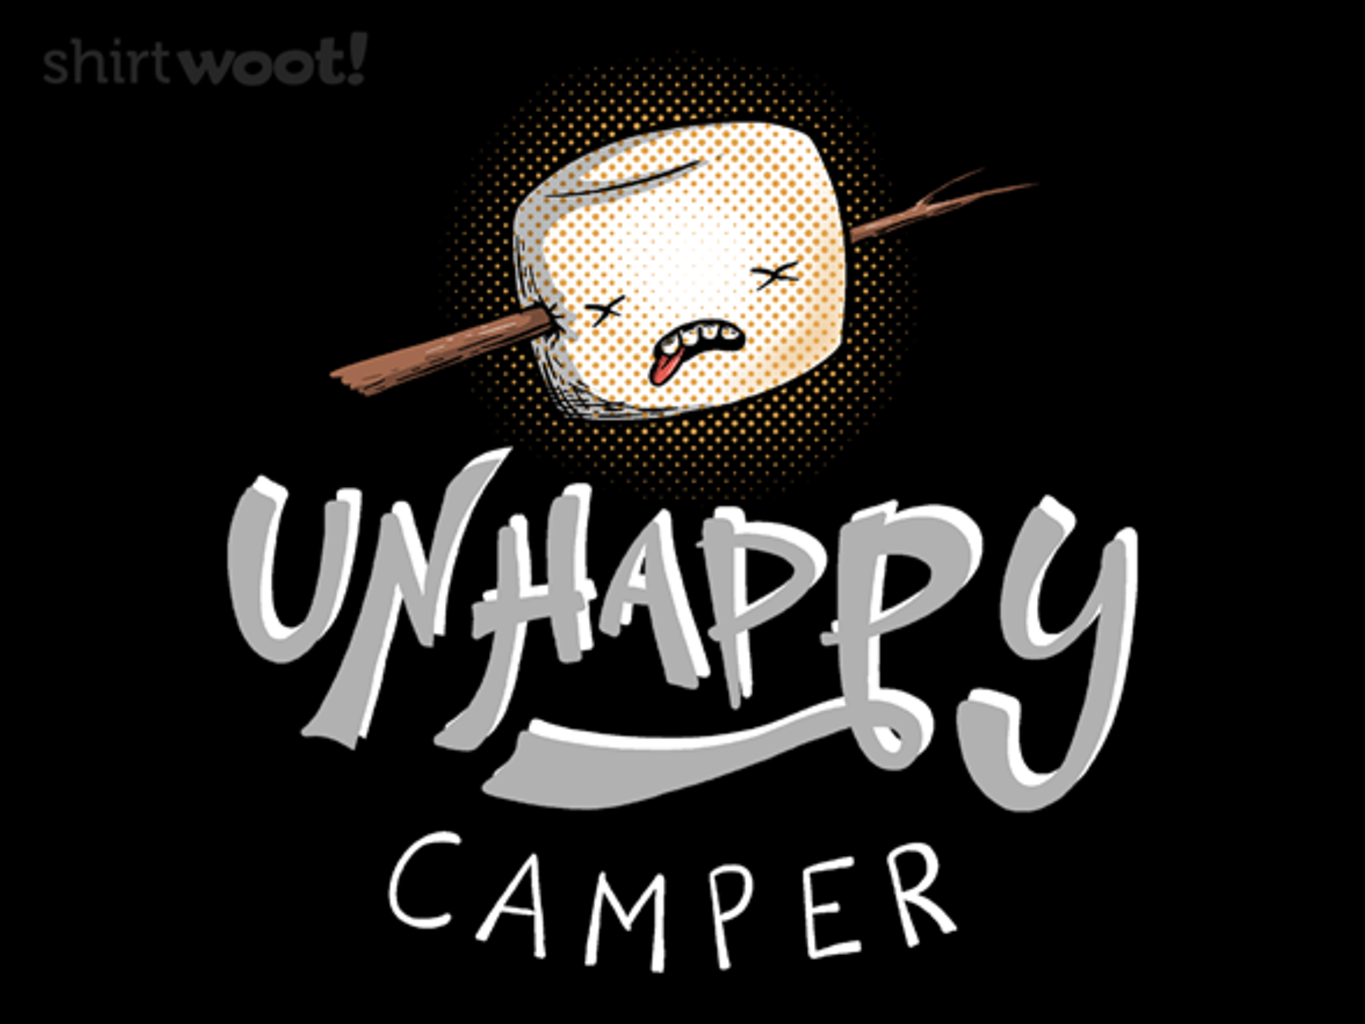 Woot!: Unhappy Camper